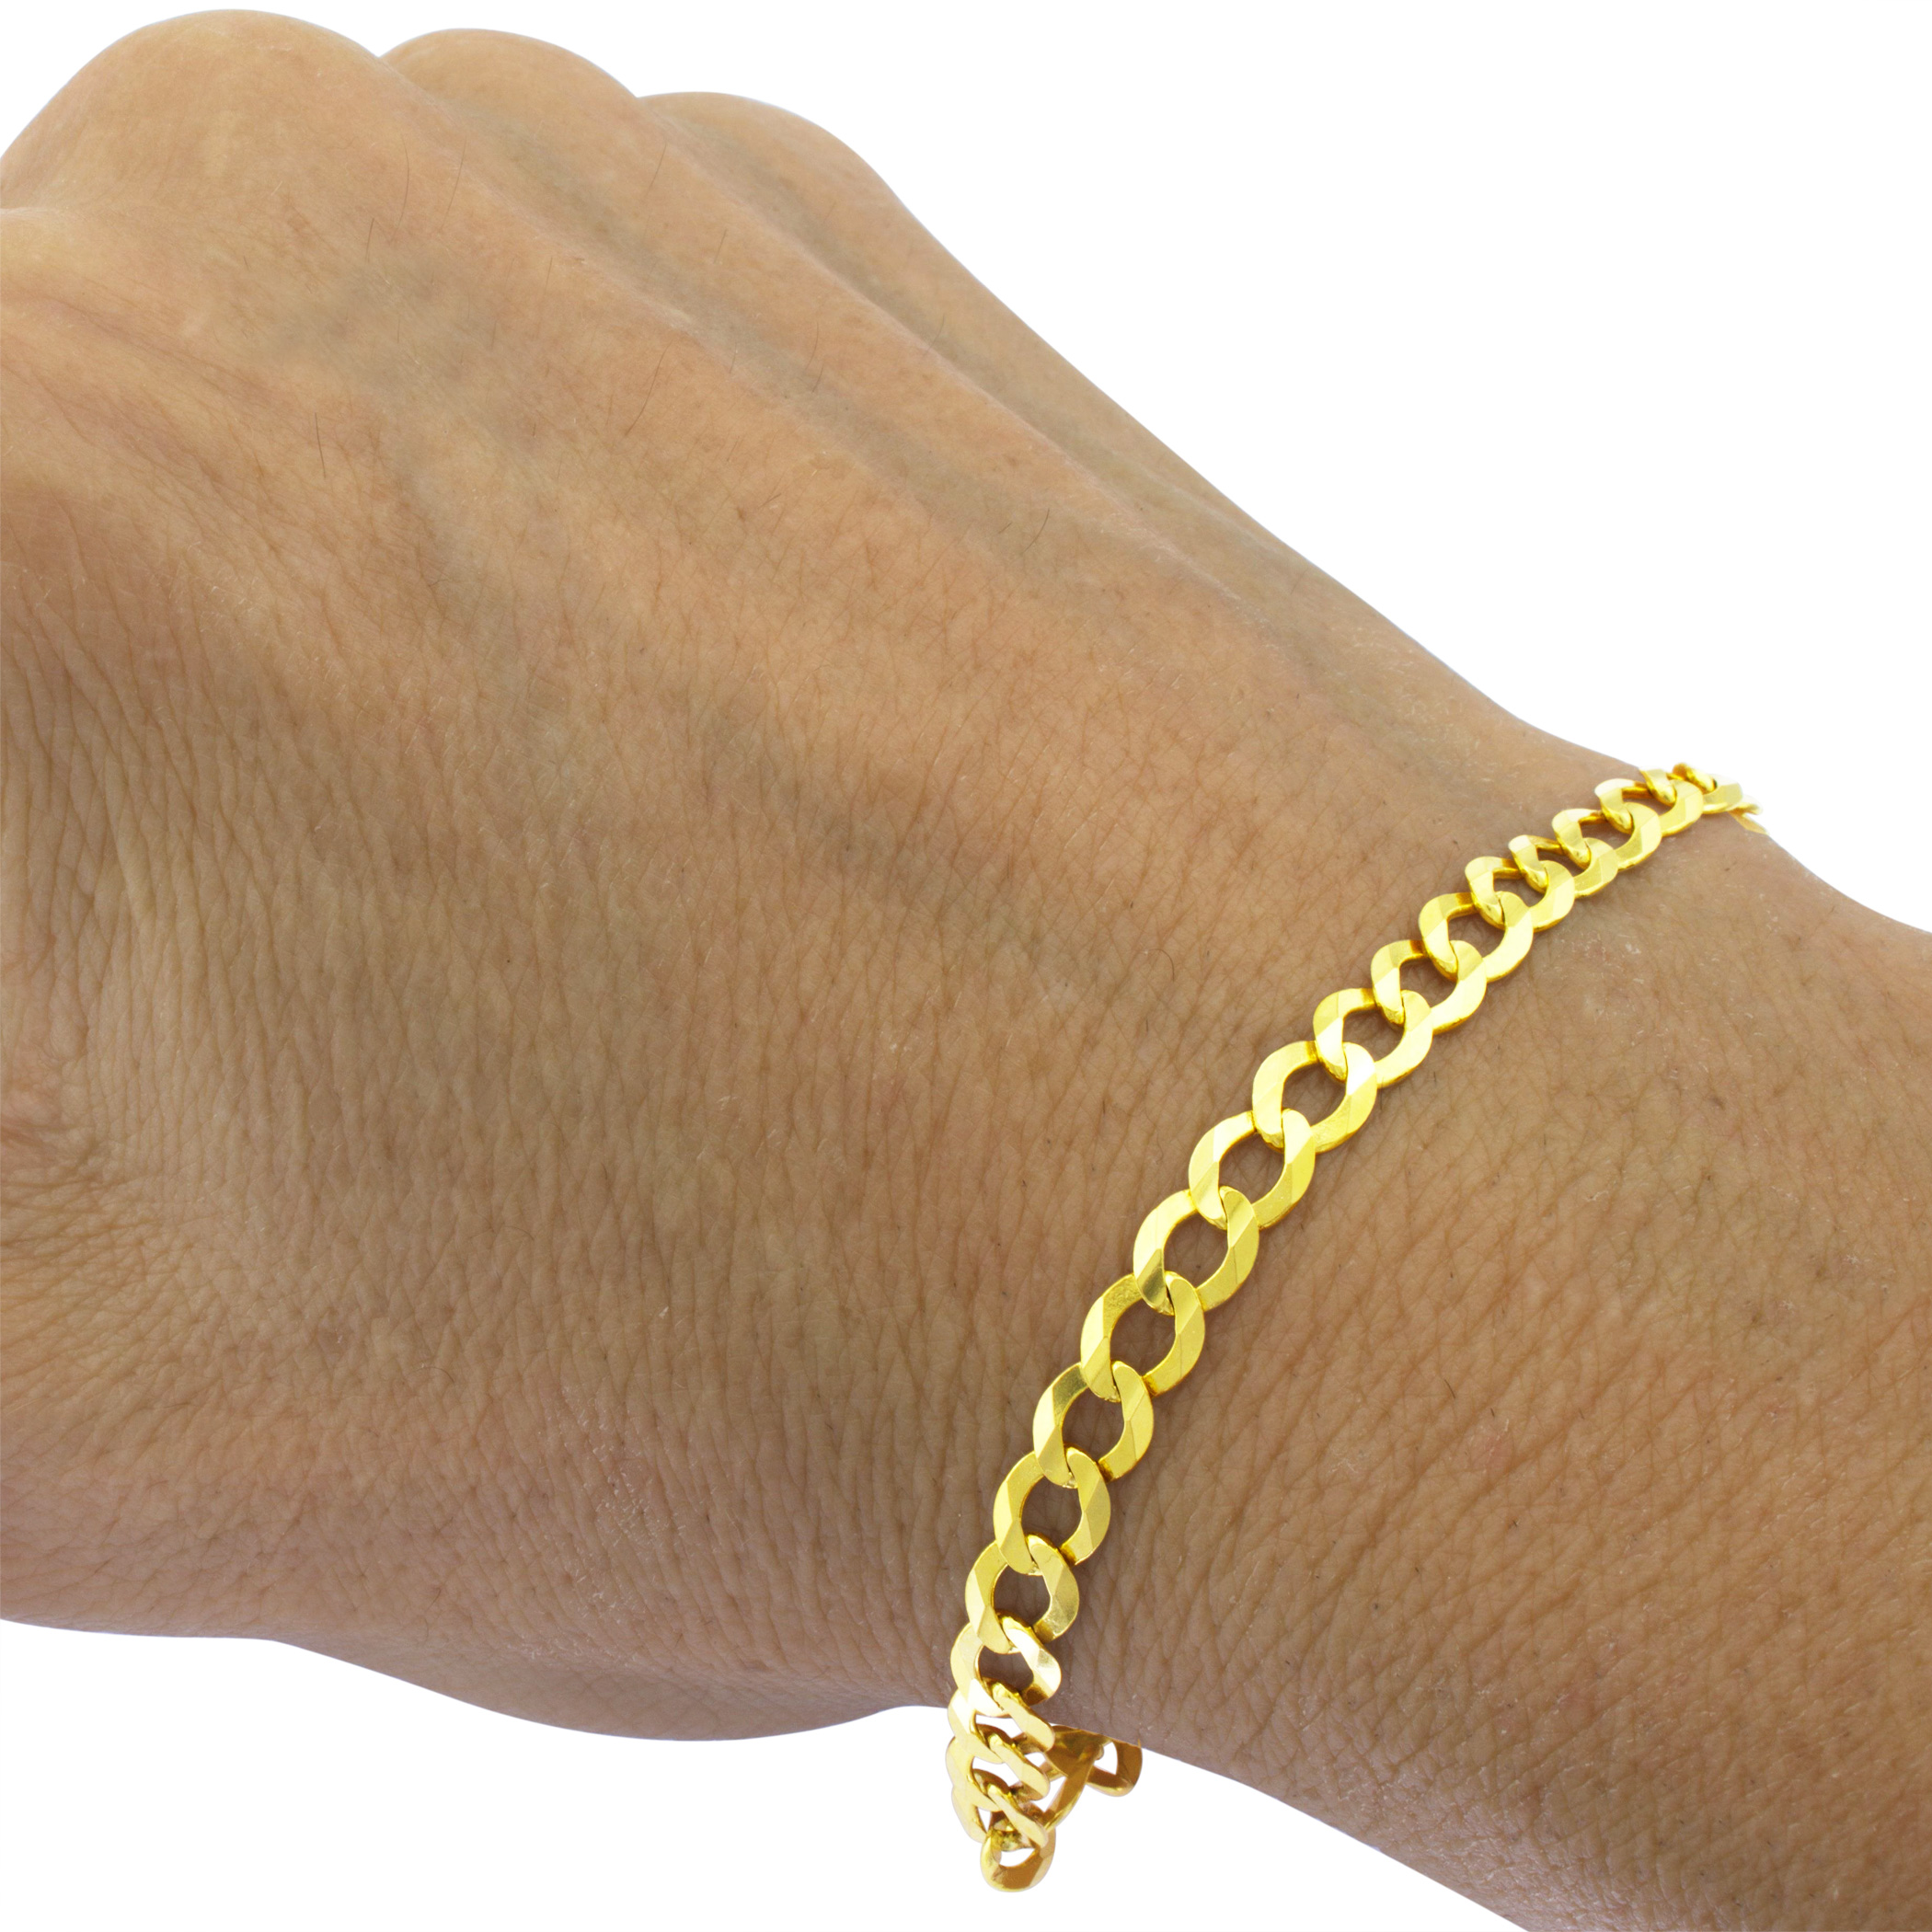 Real-10K-Yellow-Gold-6-5mm-Cuban-Curb-Chain-Link-Bracelet-Lobster-Clasp-7-034-8-034-9-034 thumbnail 13